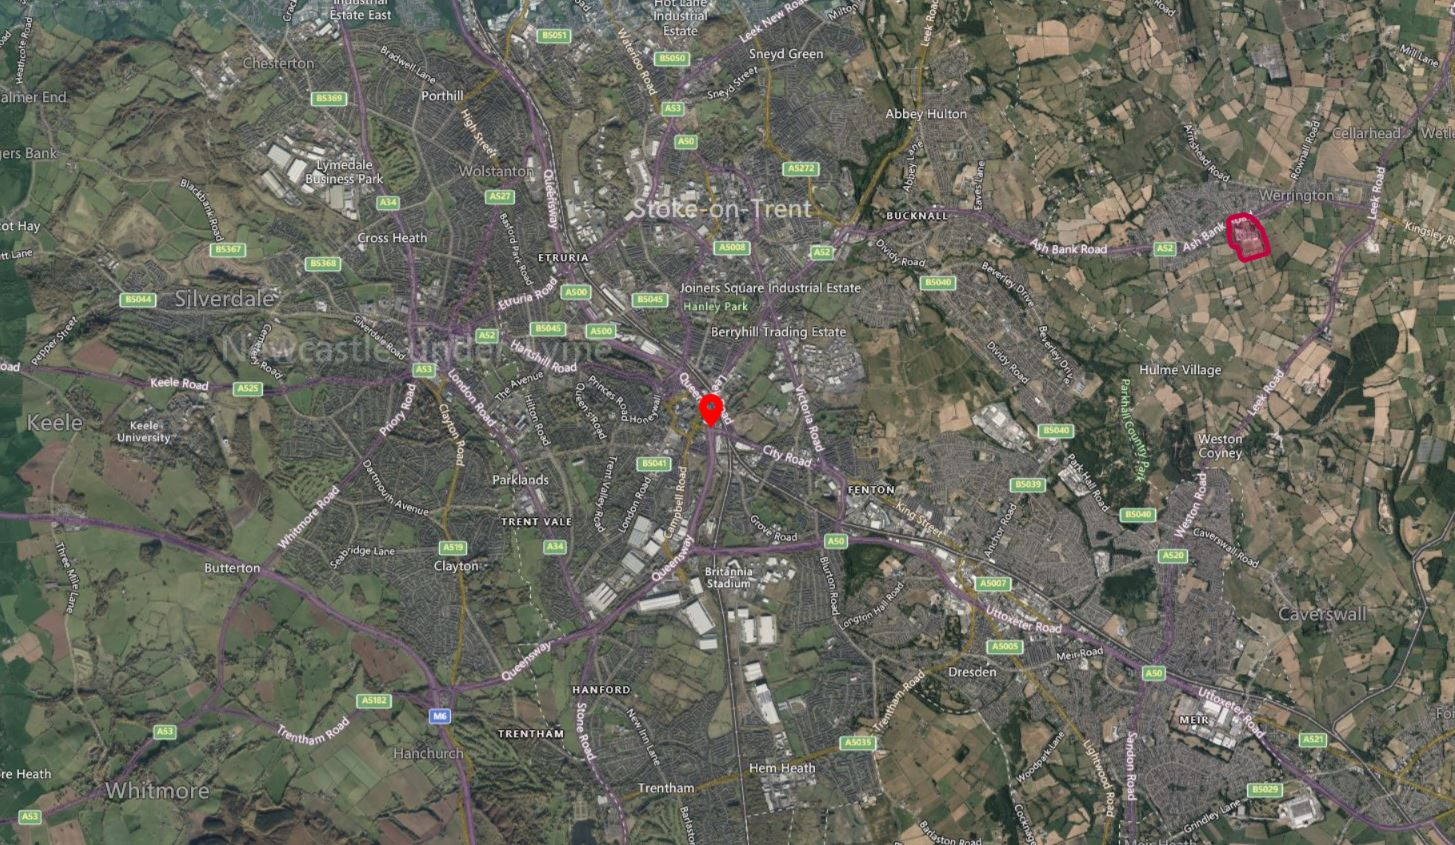 Stoke on Trent Drone Airspace Map